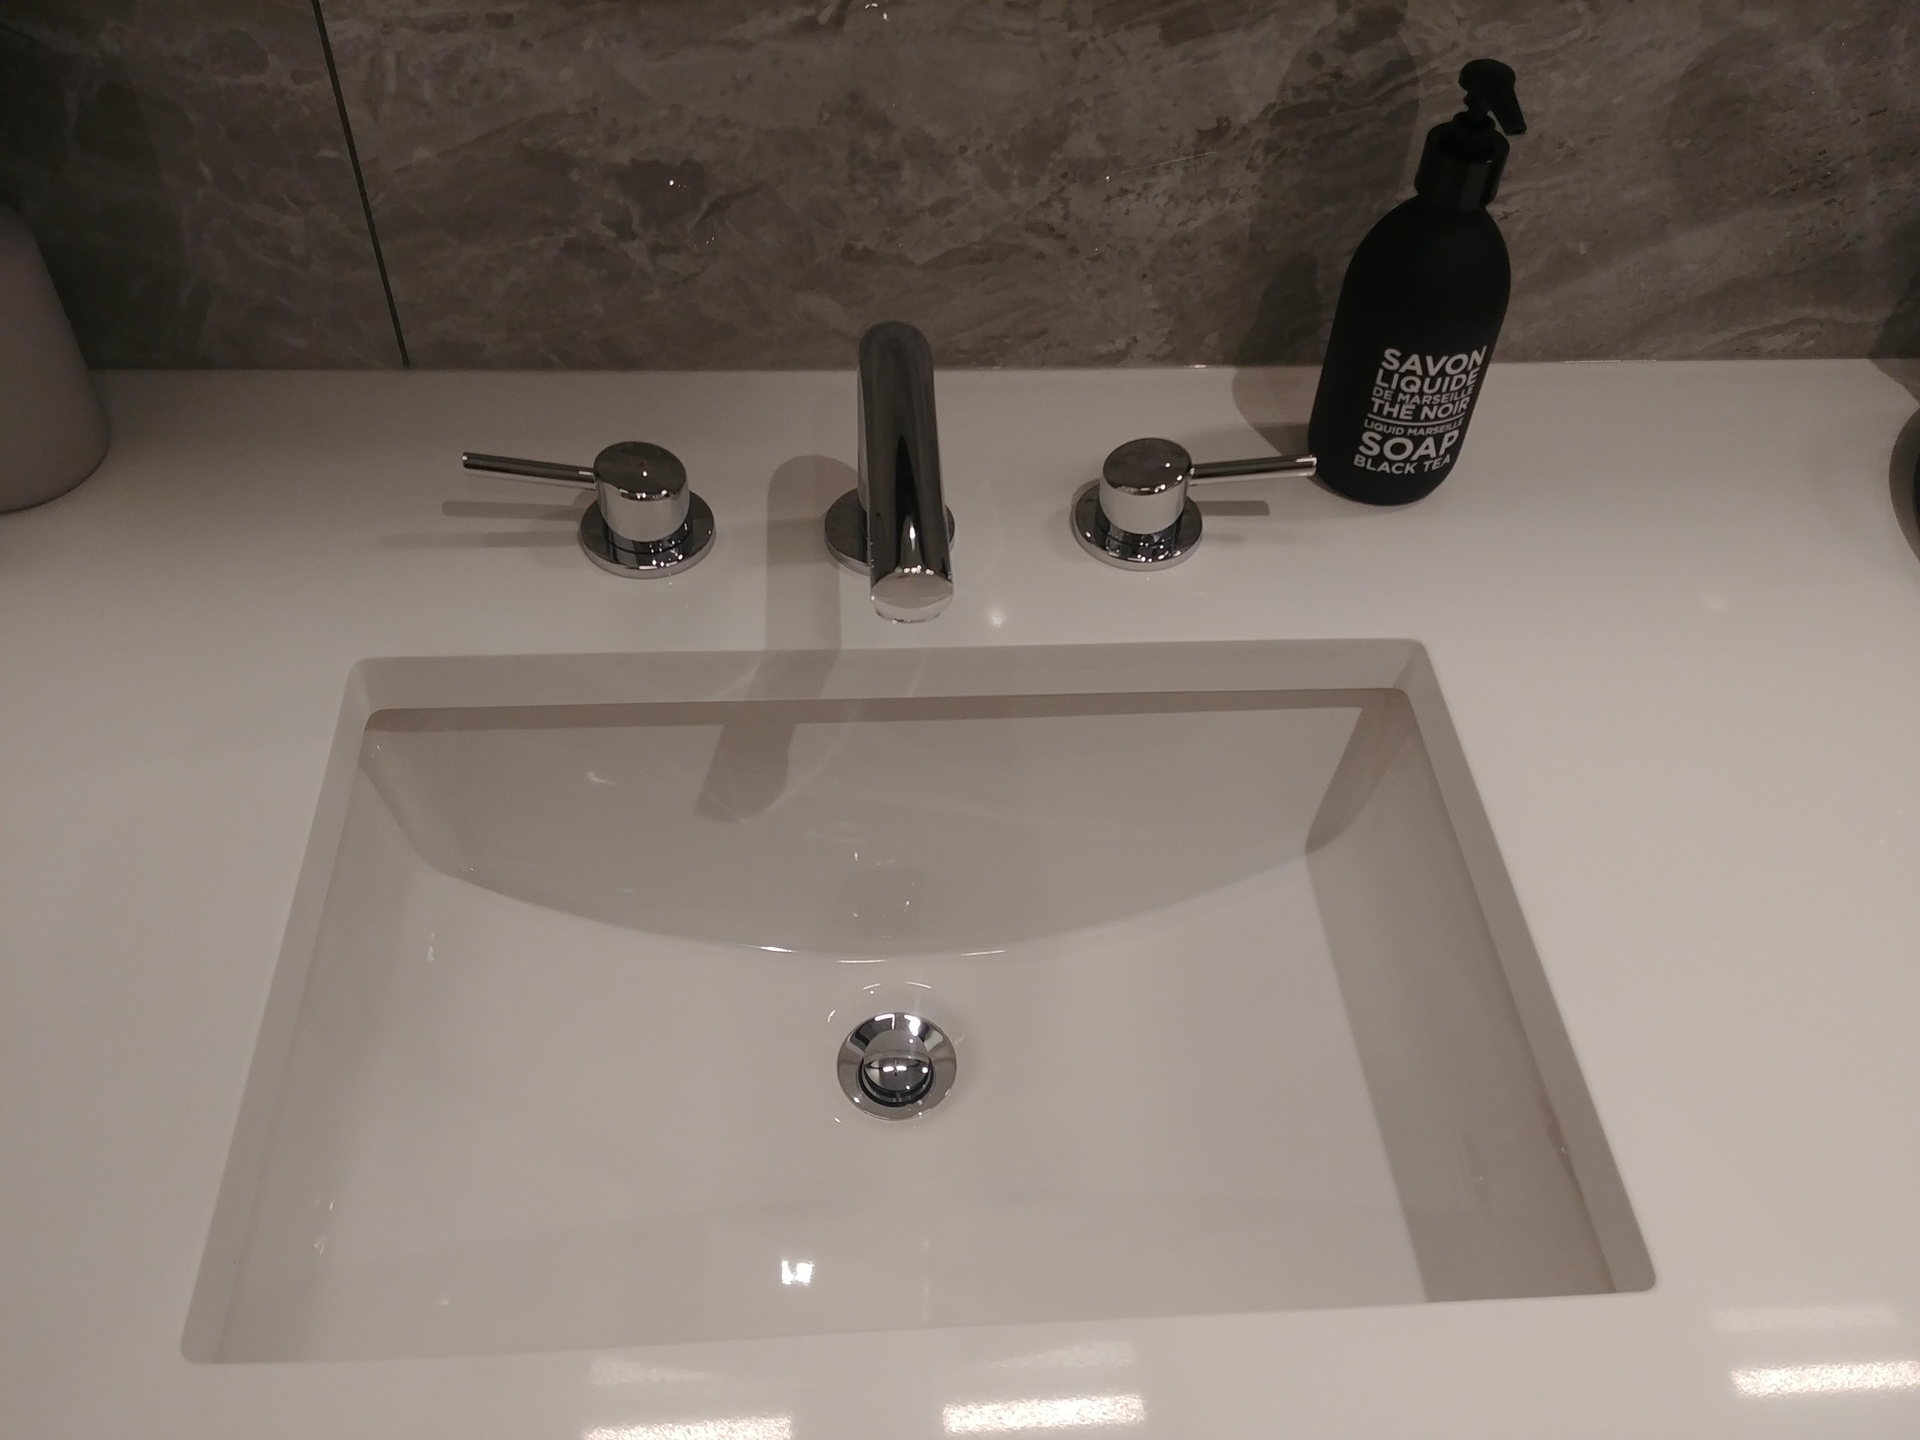 skagen-undermount-bathroom-sink-with-grohe-faucet at Skagen townhomes (606 Foster Avenue, Coquitlam West, Coquitlam)